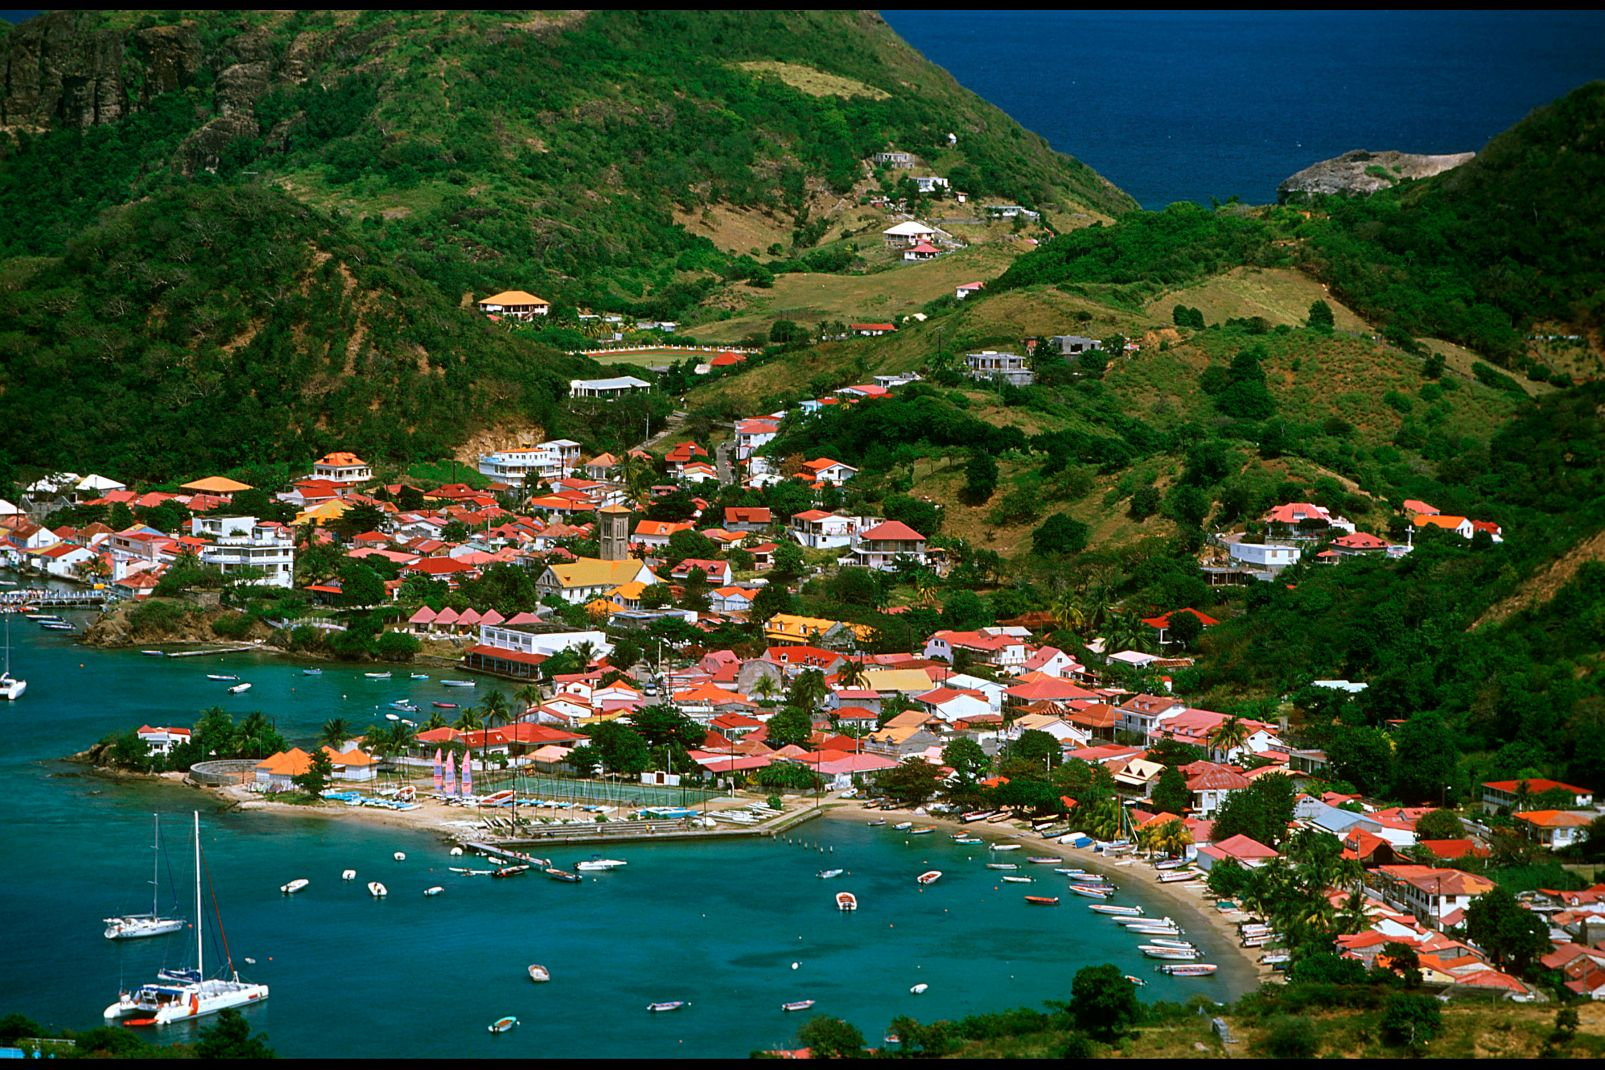 The islands of Guadeloupe